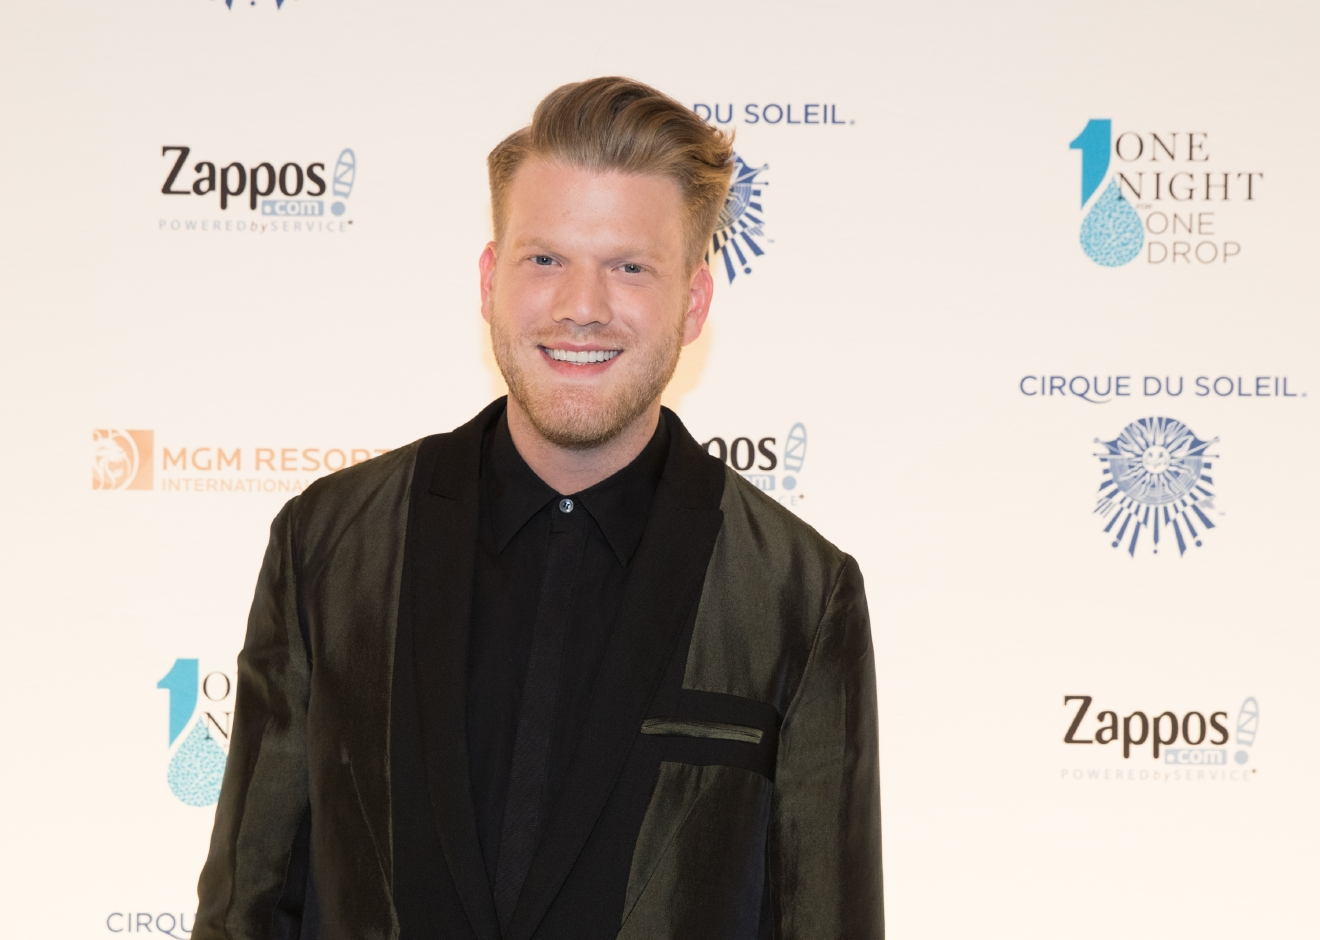 Scott Hoying from Pentatonix at One Night for One Drop 2017. (Photo courtesy of Erik Kabik/ErikKabik.com)